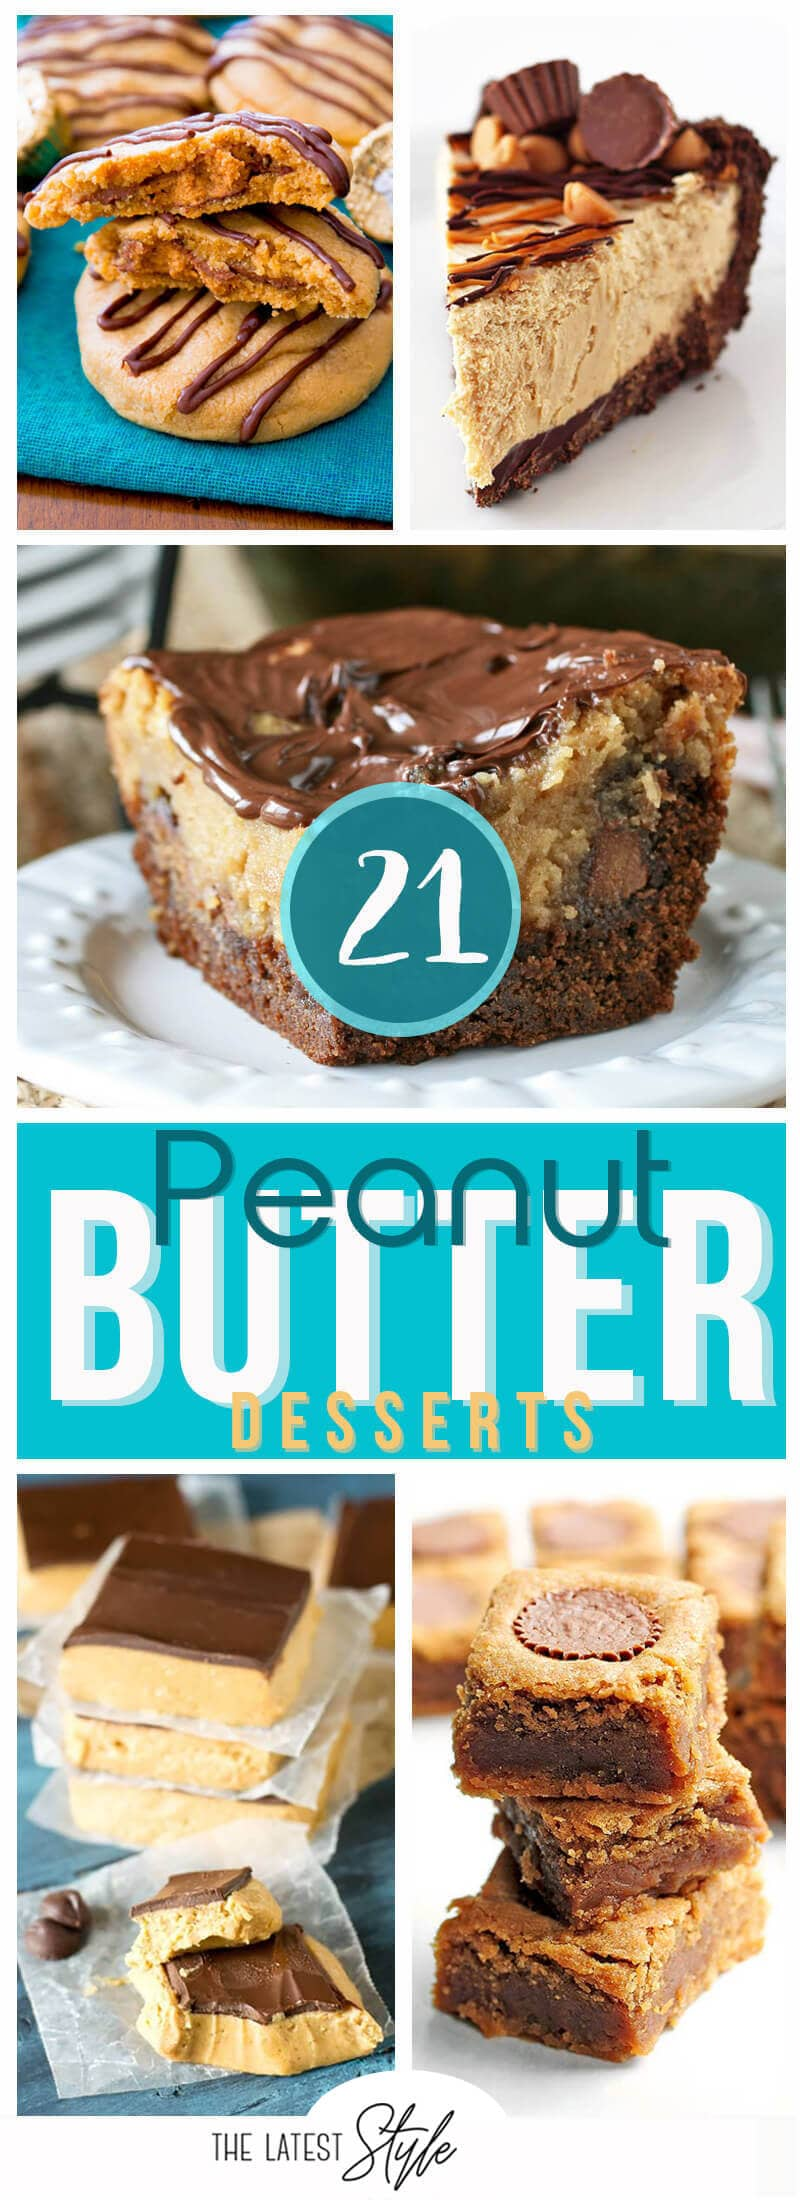 21 Creative Peanut Butter Dessert Recipes that will Rock Your World